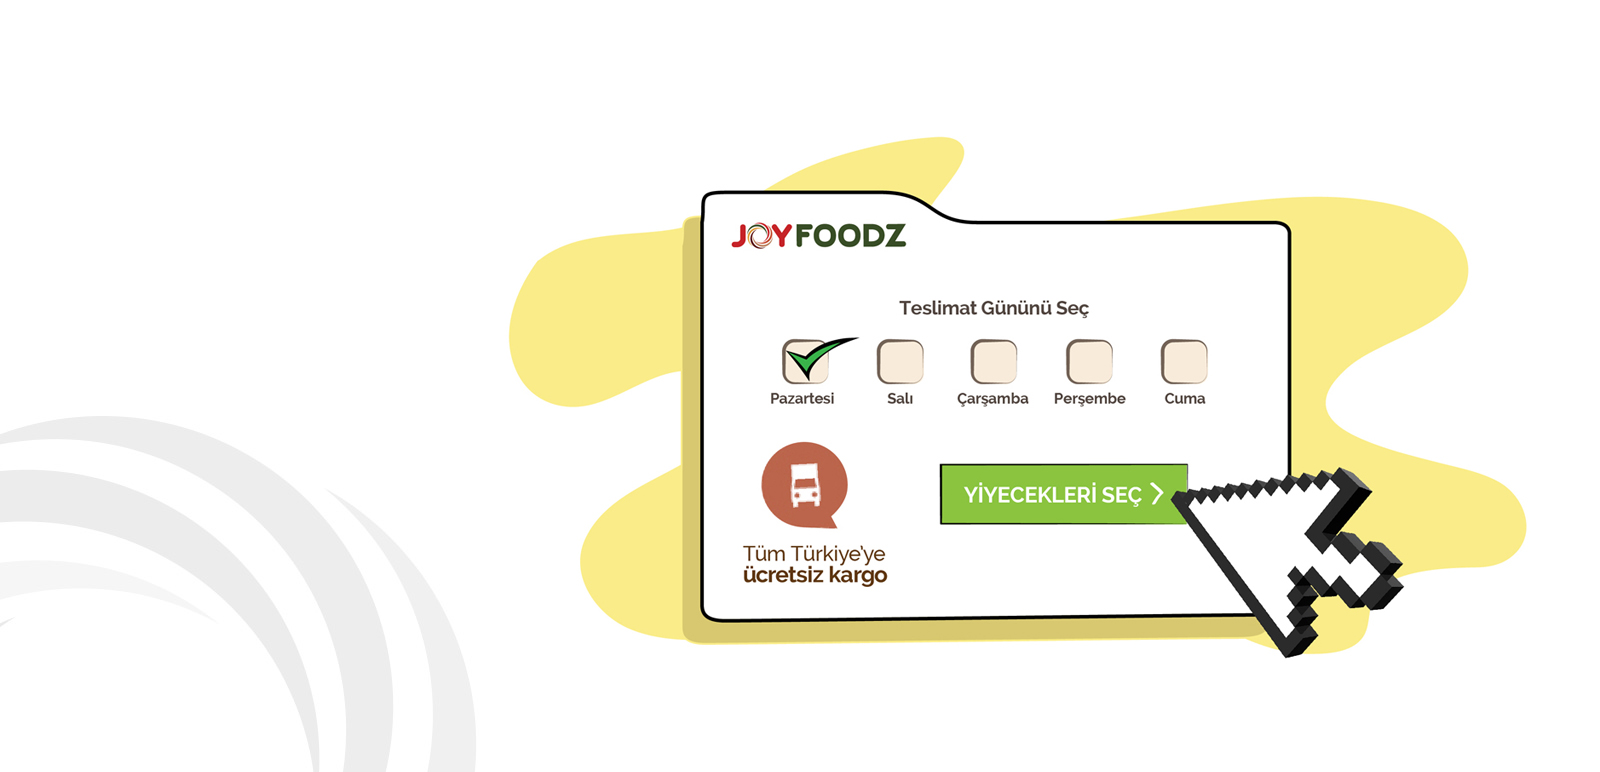 Joyfoodz Animation, Illustration 9